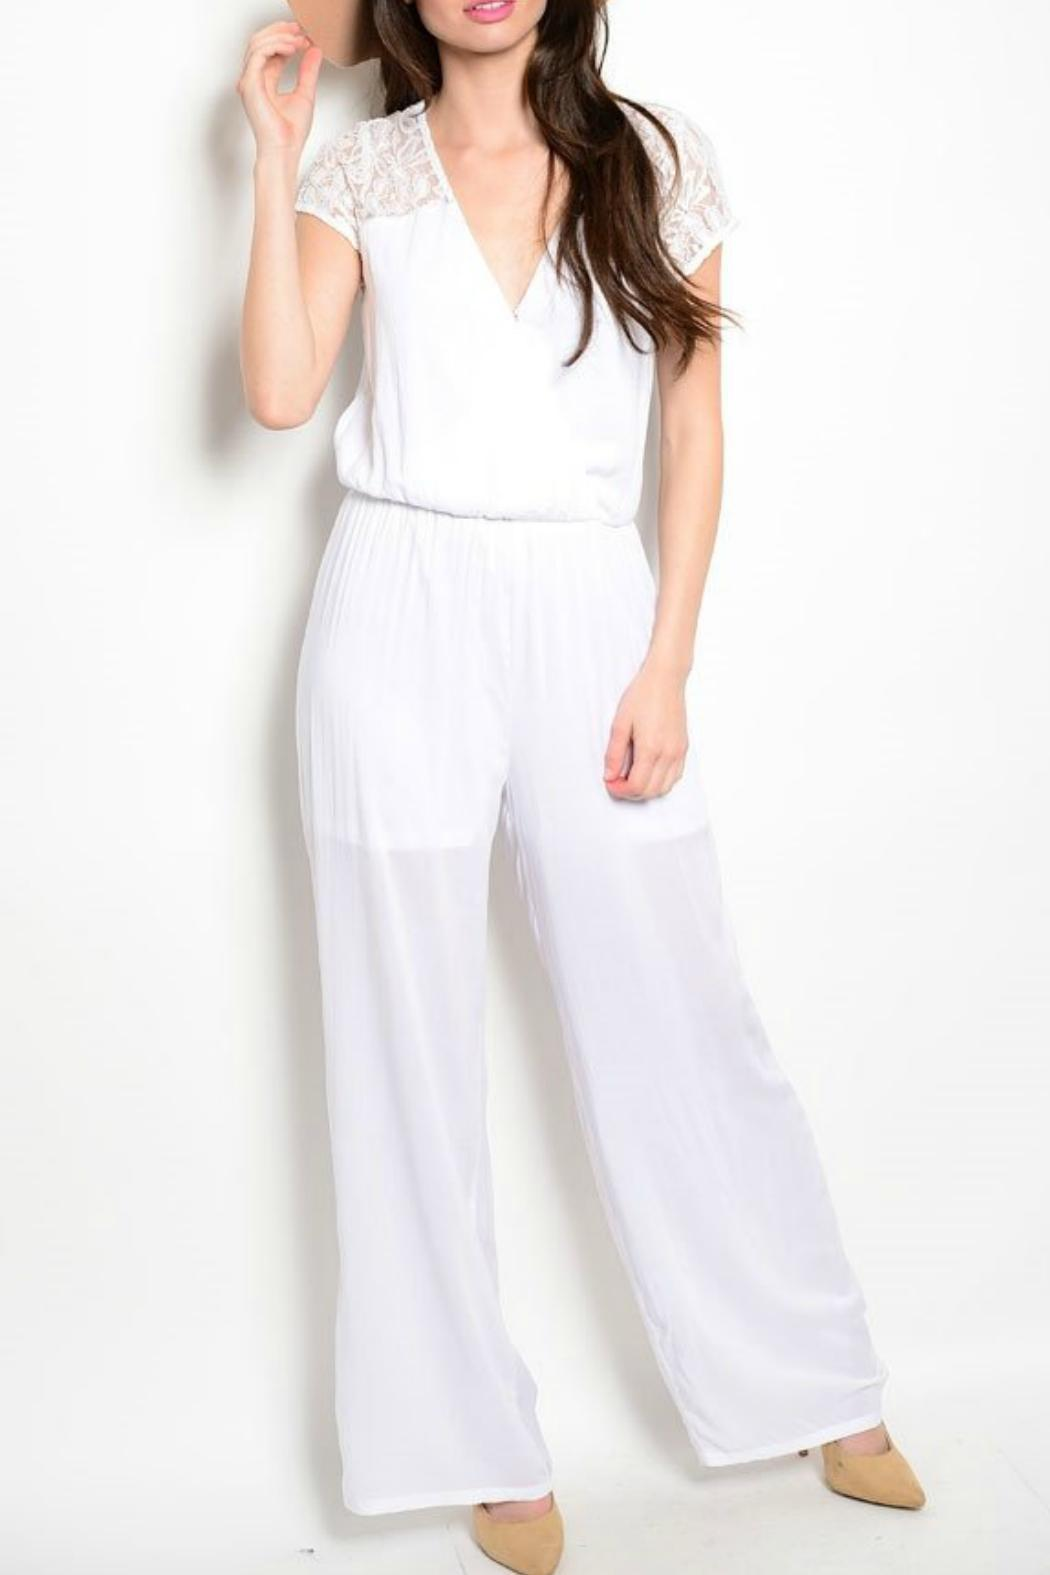 cb09aff0926 Patty S Closet White Pant Jumper From Las Vegas Tiques